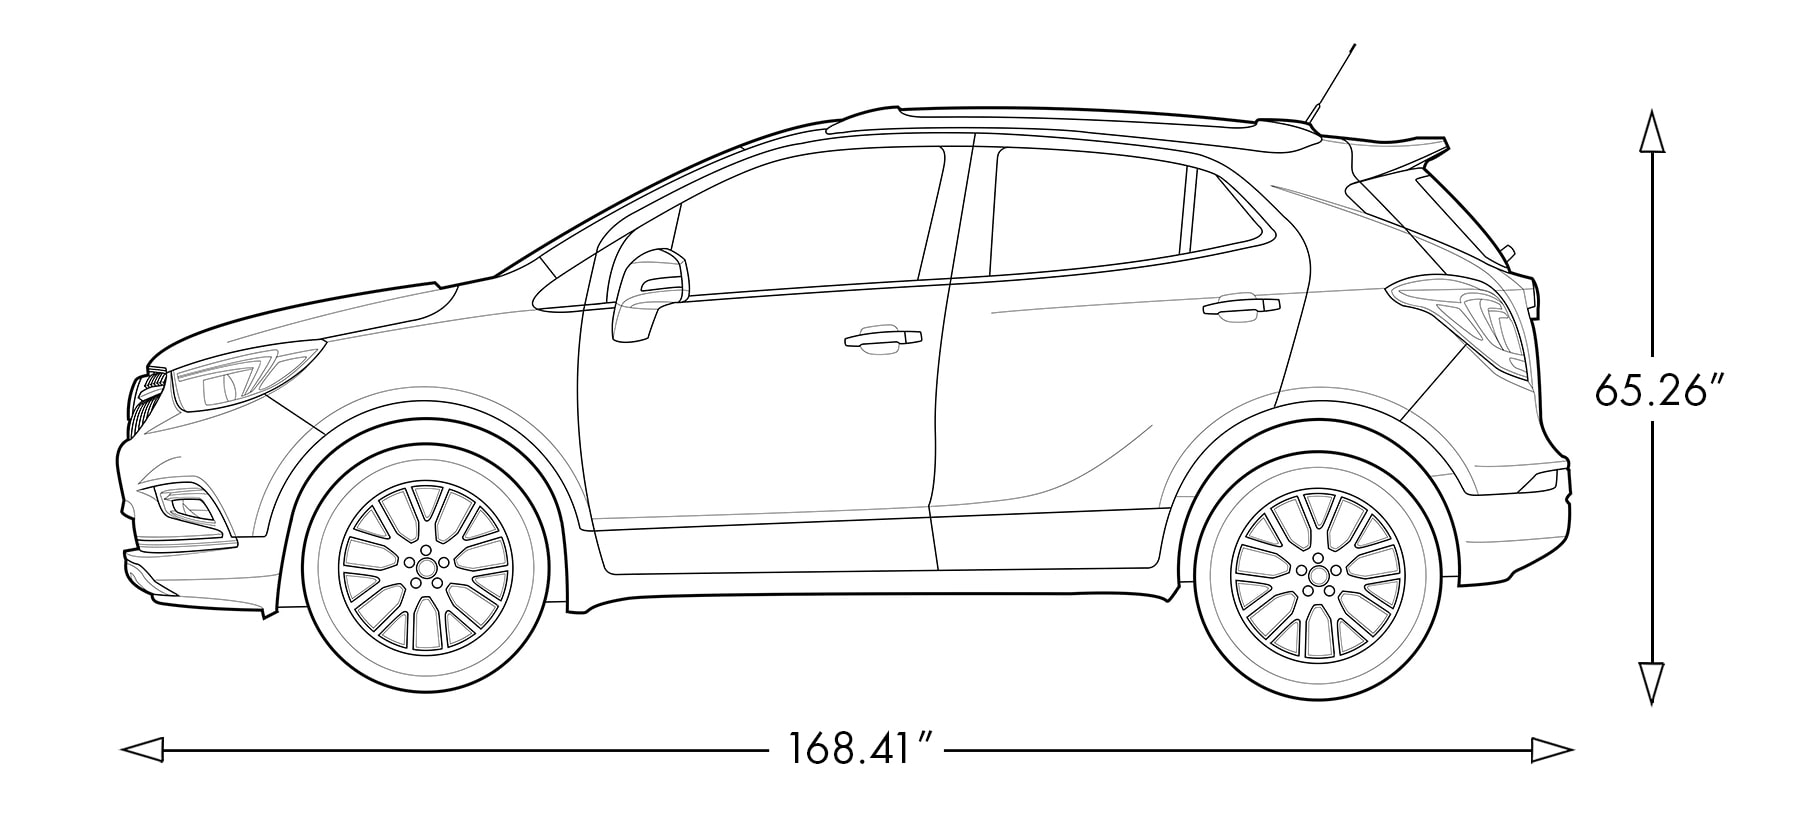 hight resolution of diagram image showing the height and length of the 2019 buick encore small luxury suv